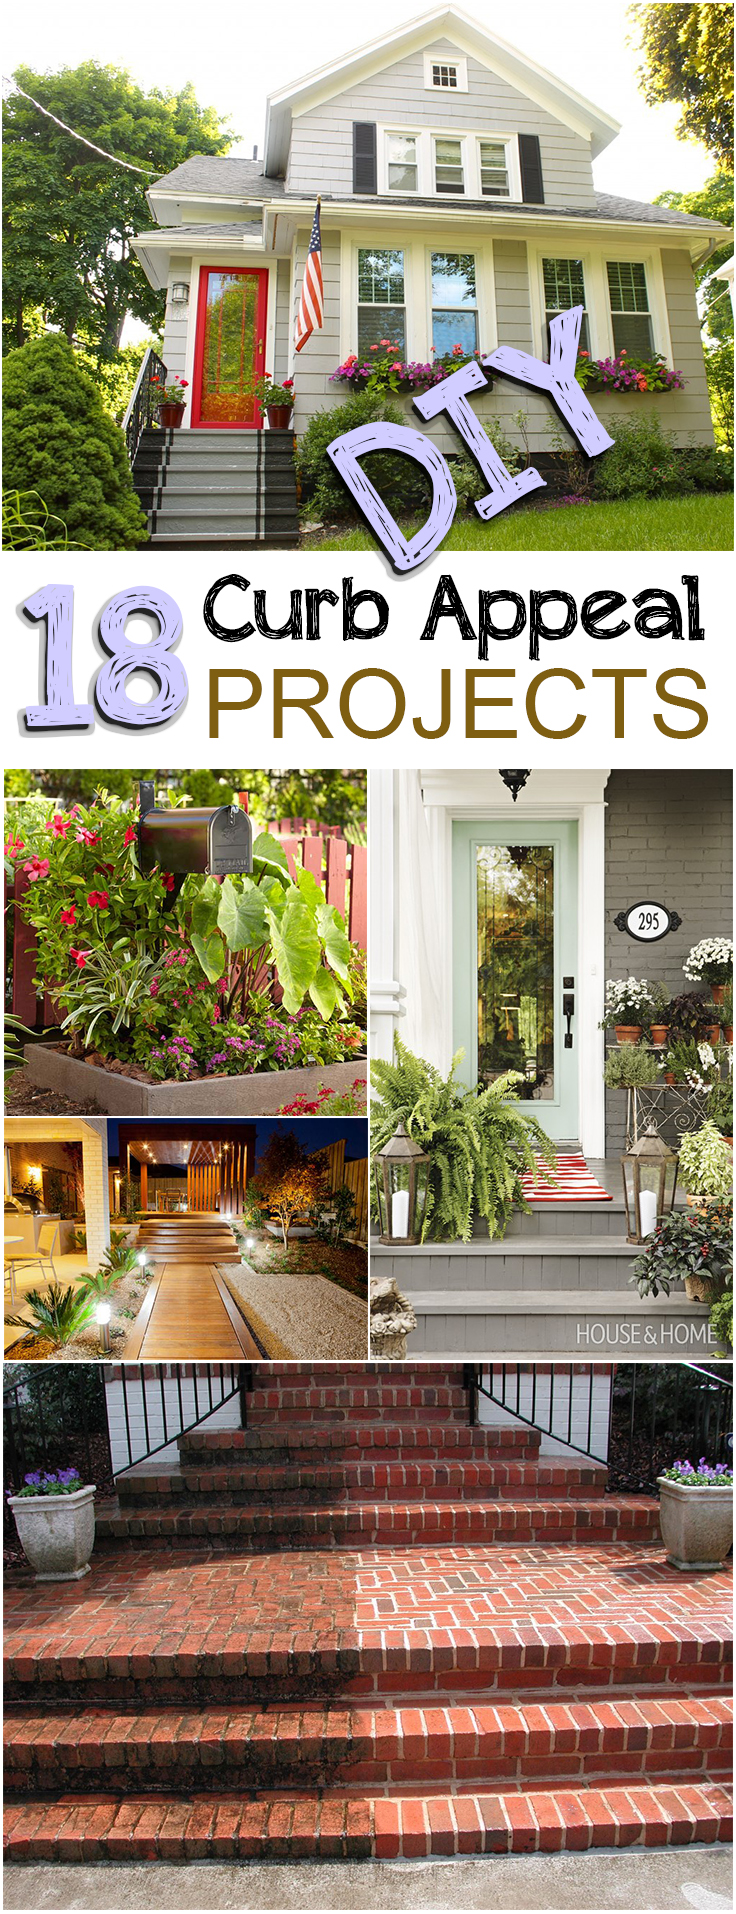 18 Diy Curb Appeal Projects Page 14 Of 19 Picky Stitch